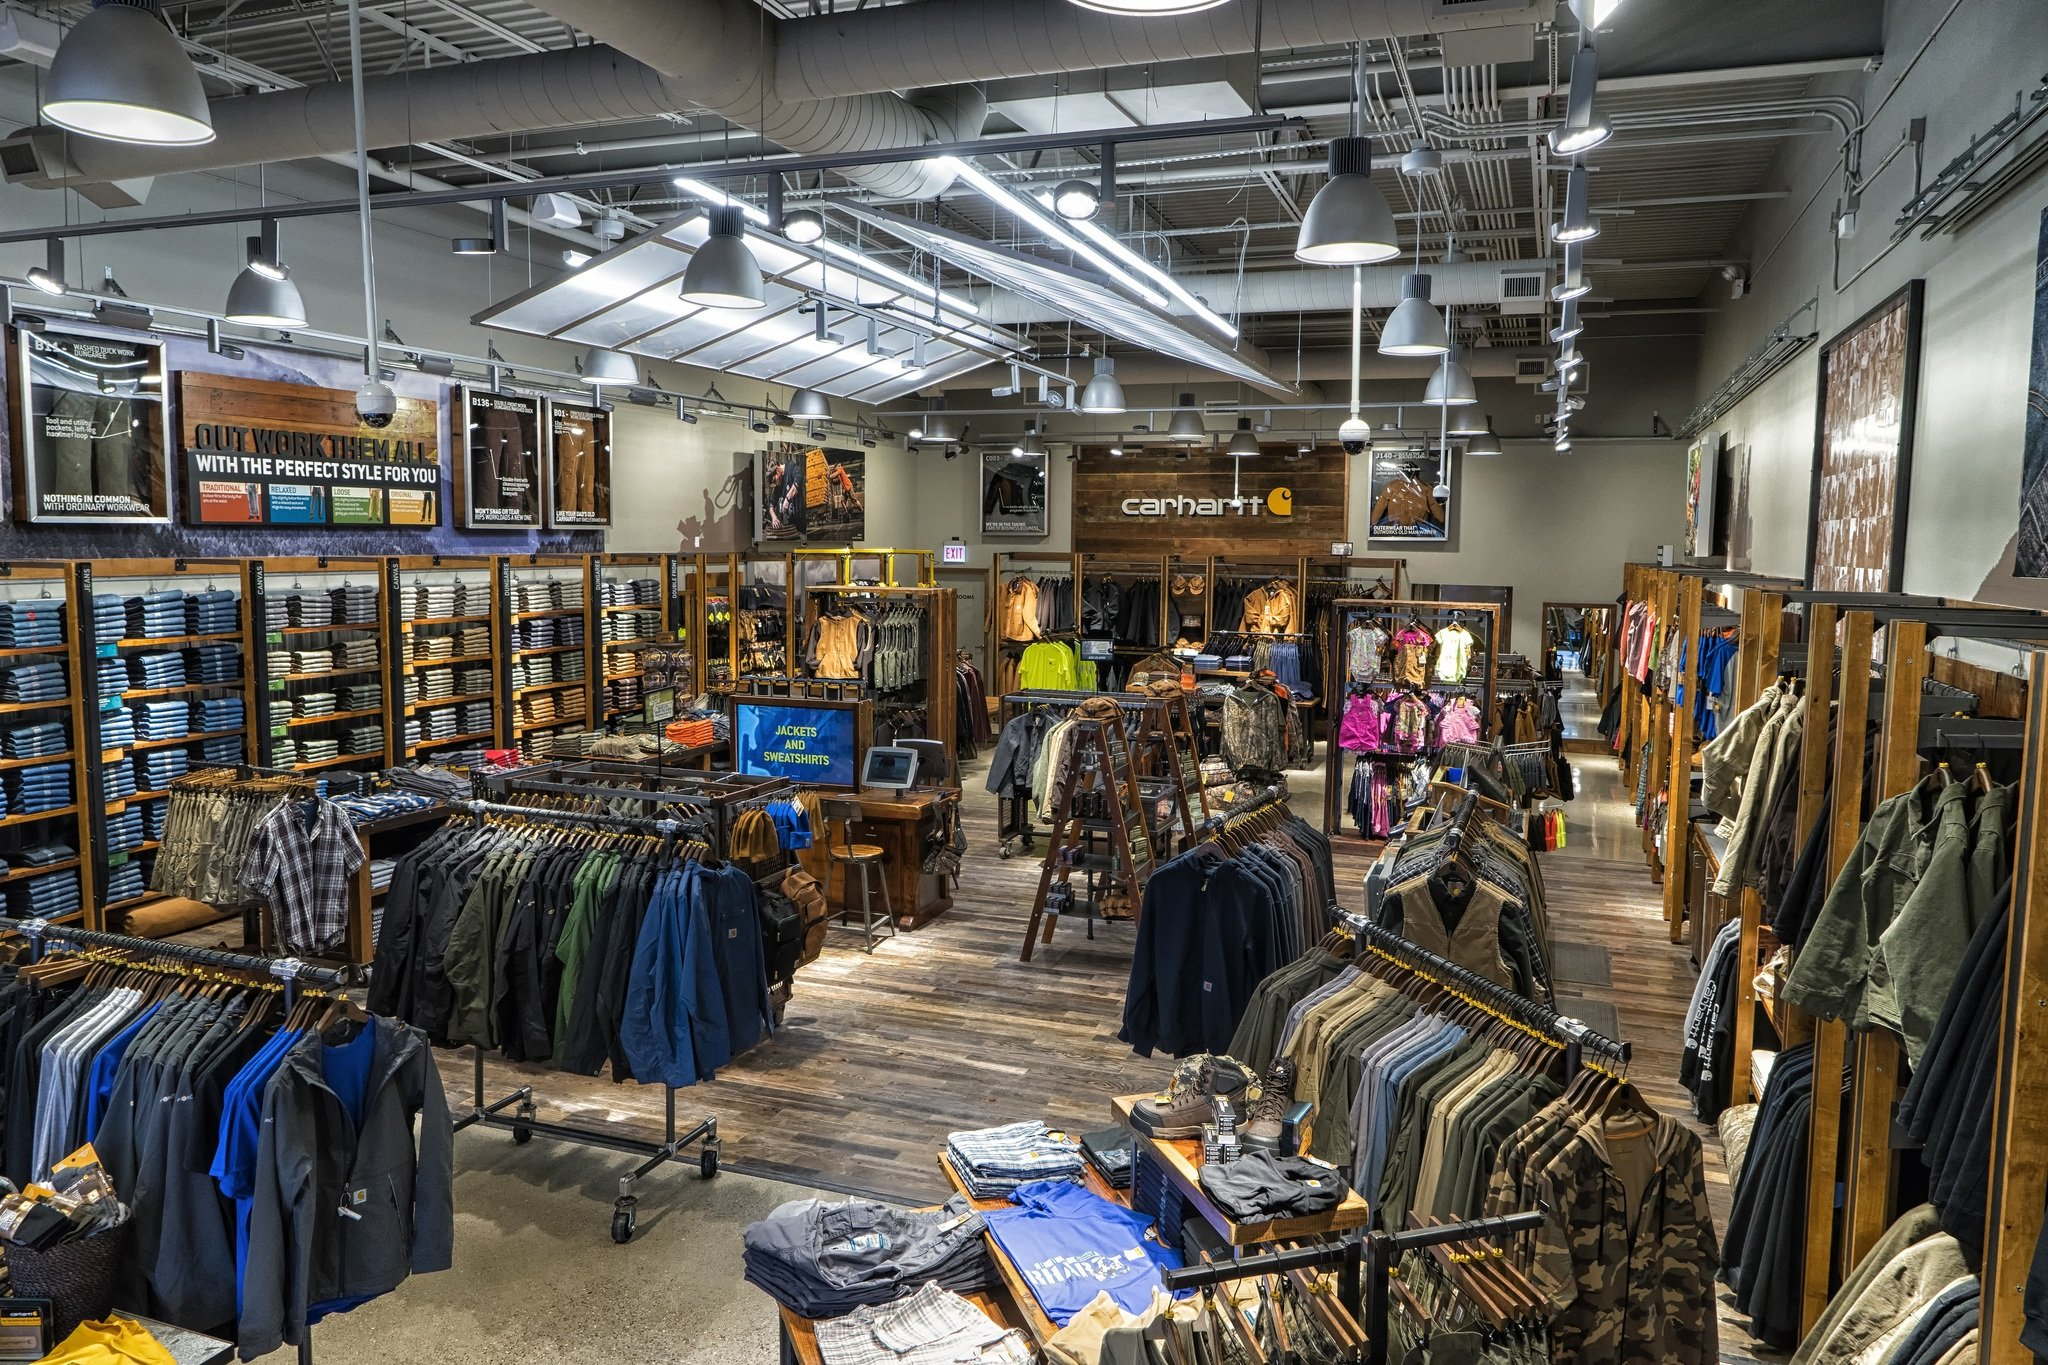 Furniture Store Browns Plains Carhartt Store Opens Friday At Crocker Park Cleveland